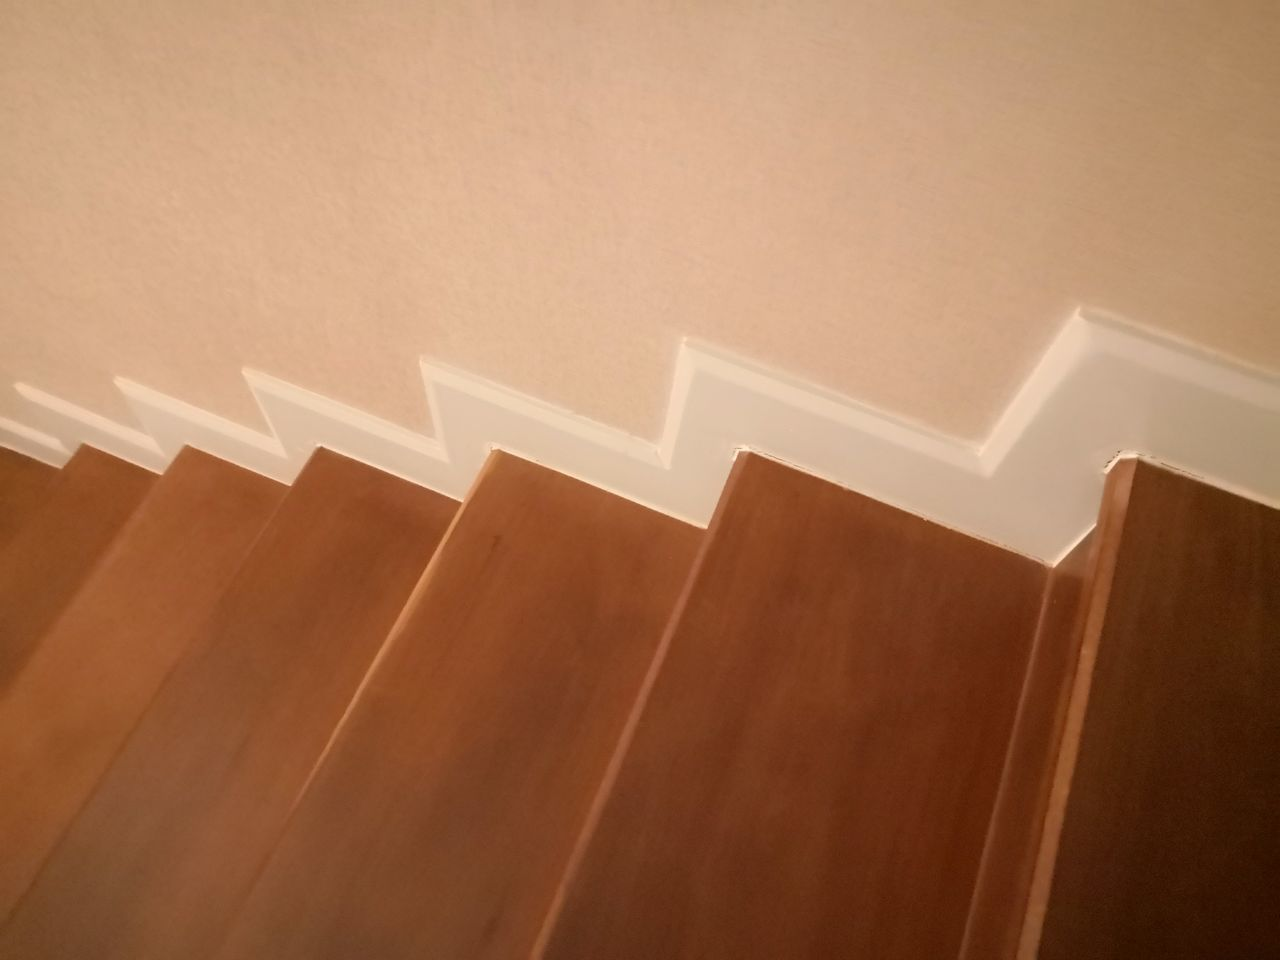 LOW ANGLE VIEW OF STAIRCASE AGAINST WALL